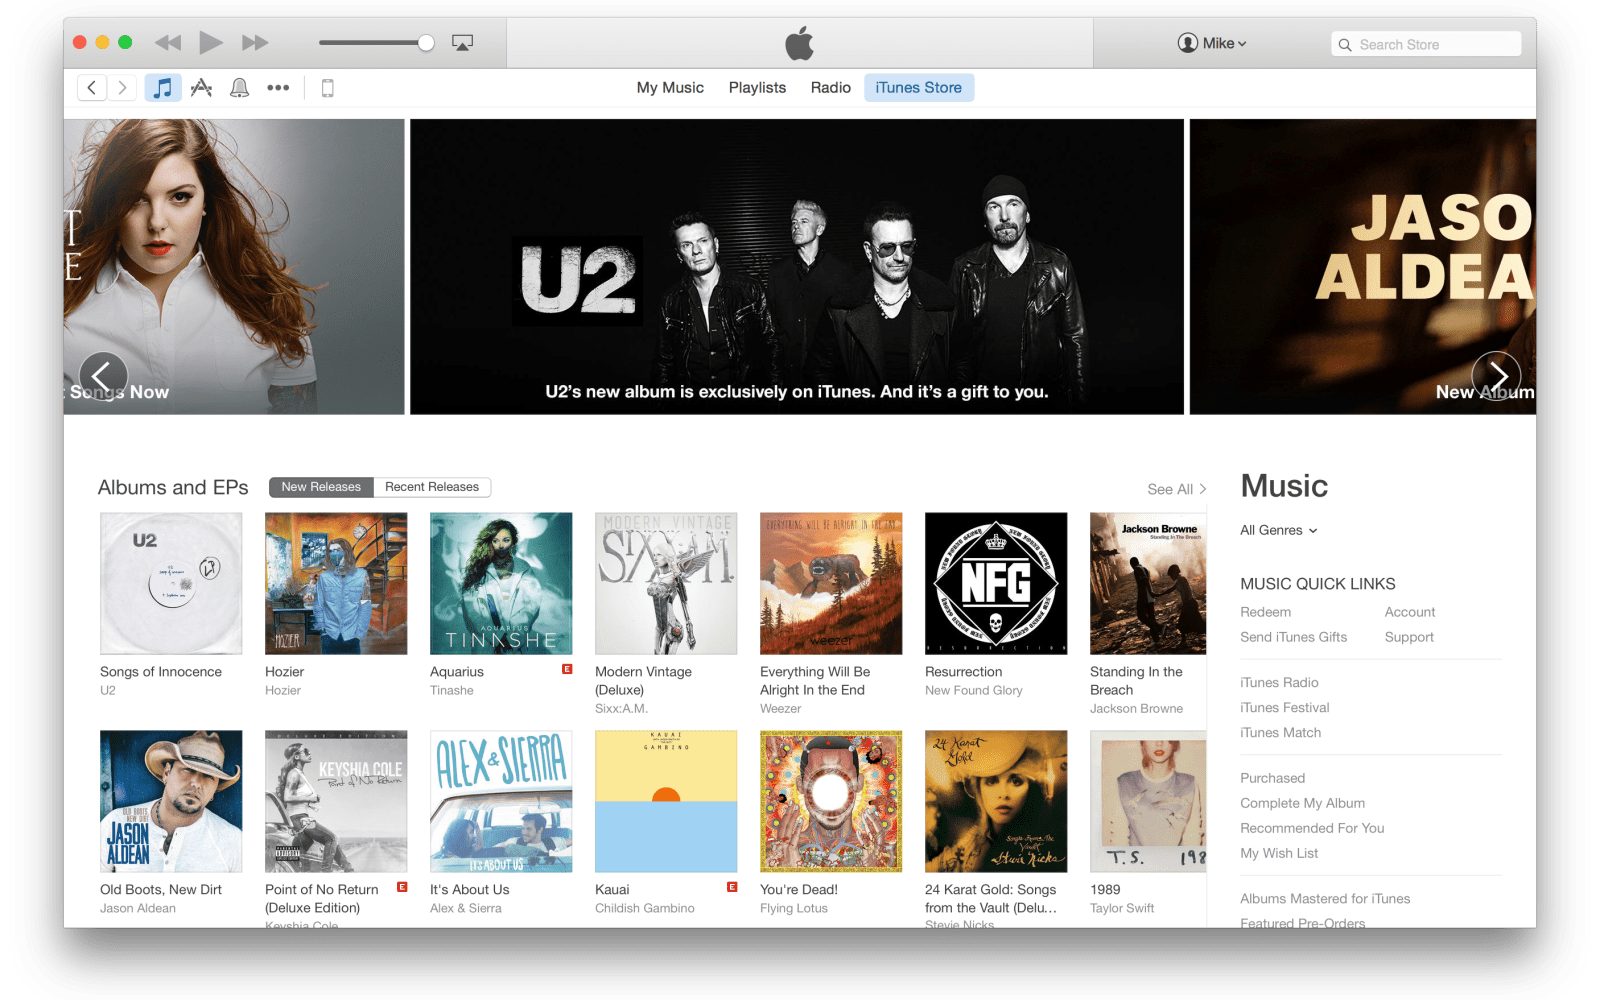 Apple begins rollout of redesigned iTunes Store ahead of OS X Yosemite launch